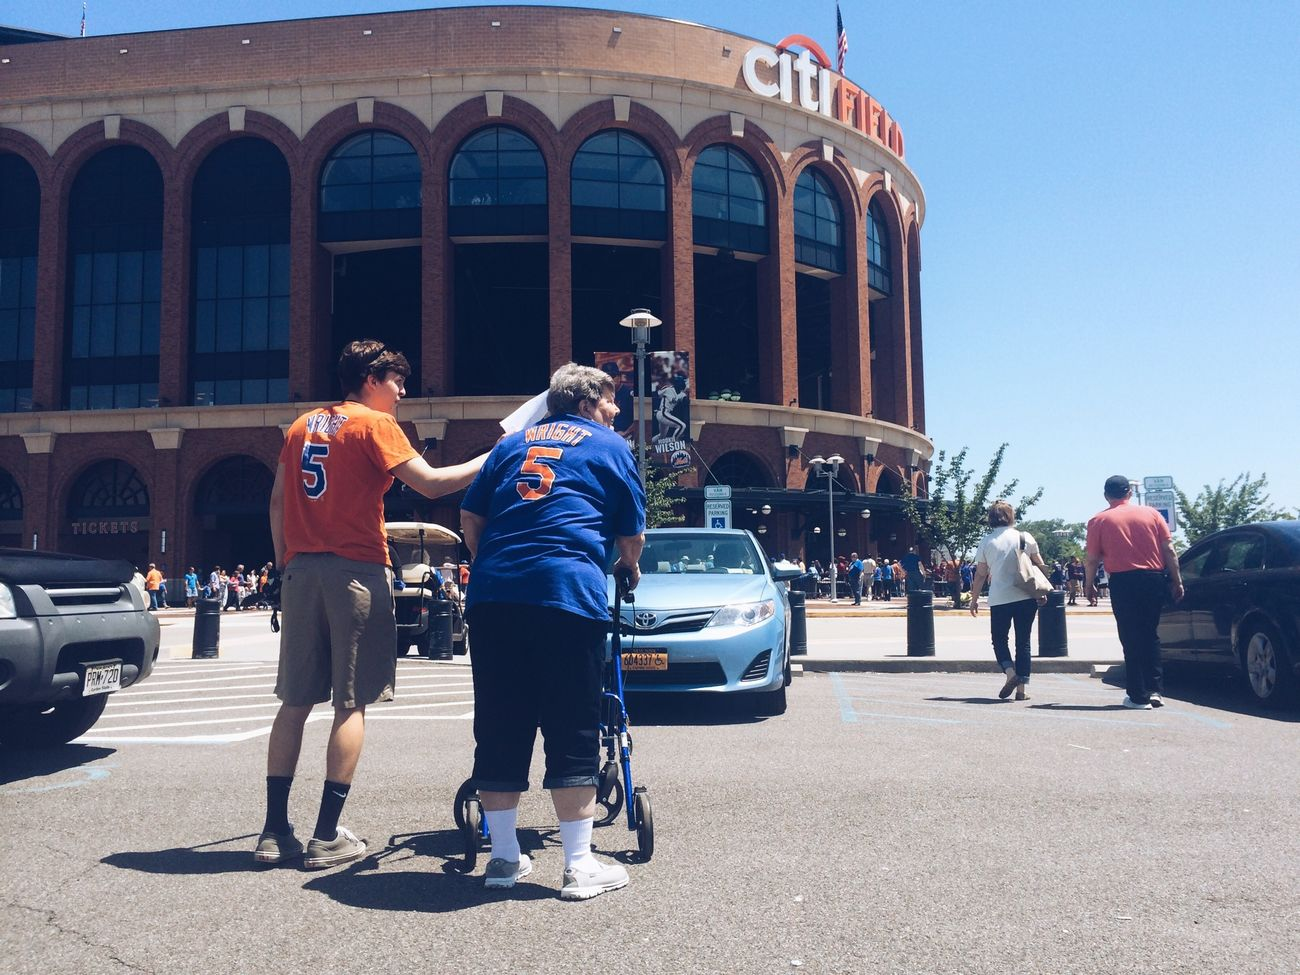 RePicture Wealth taking Grandma to see the Mets